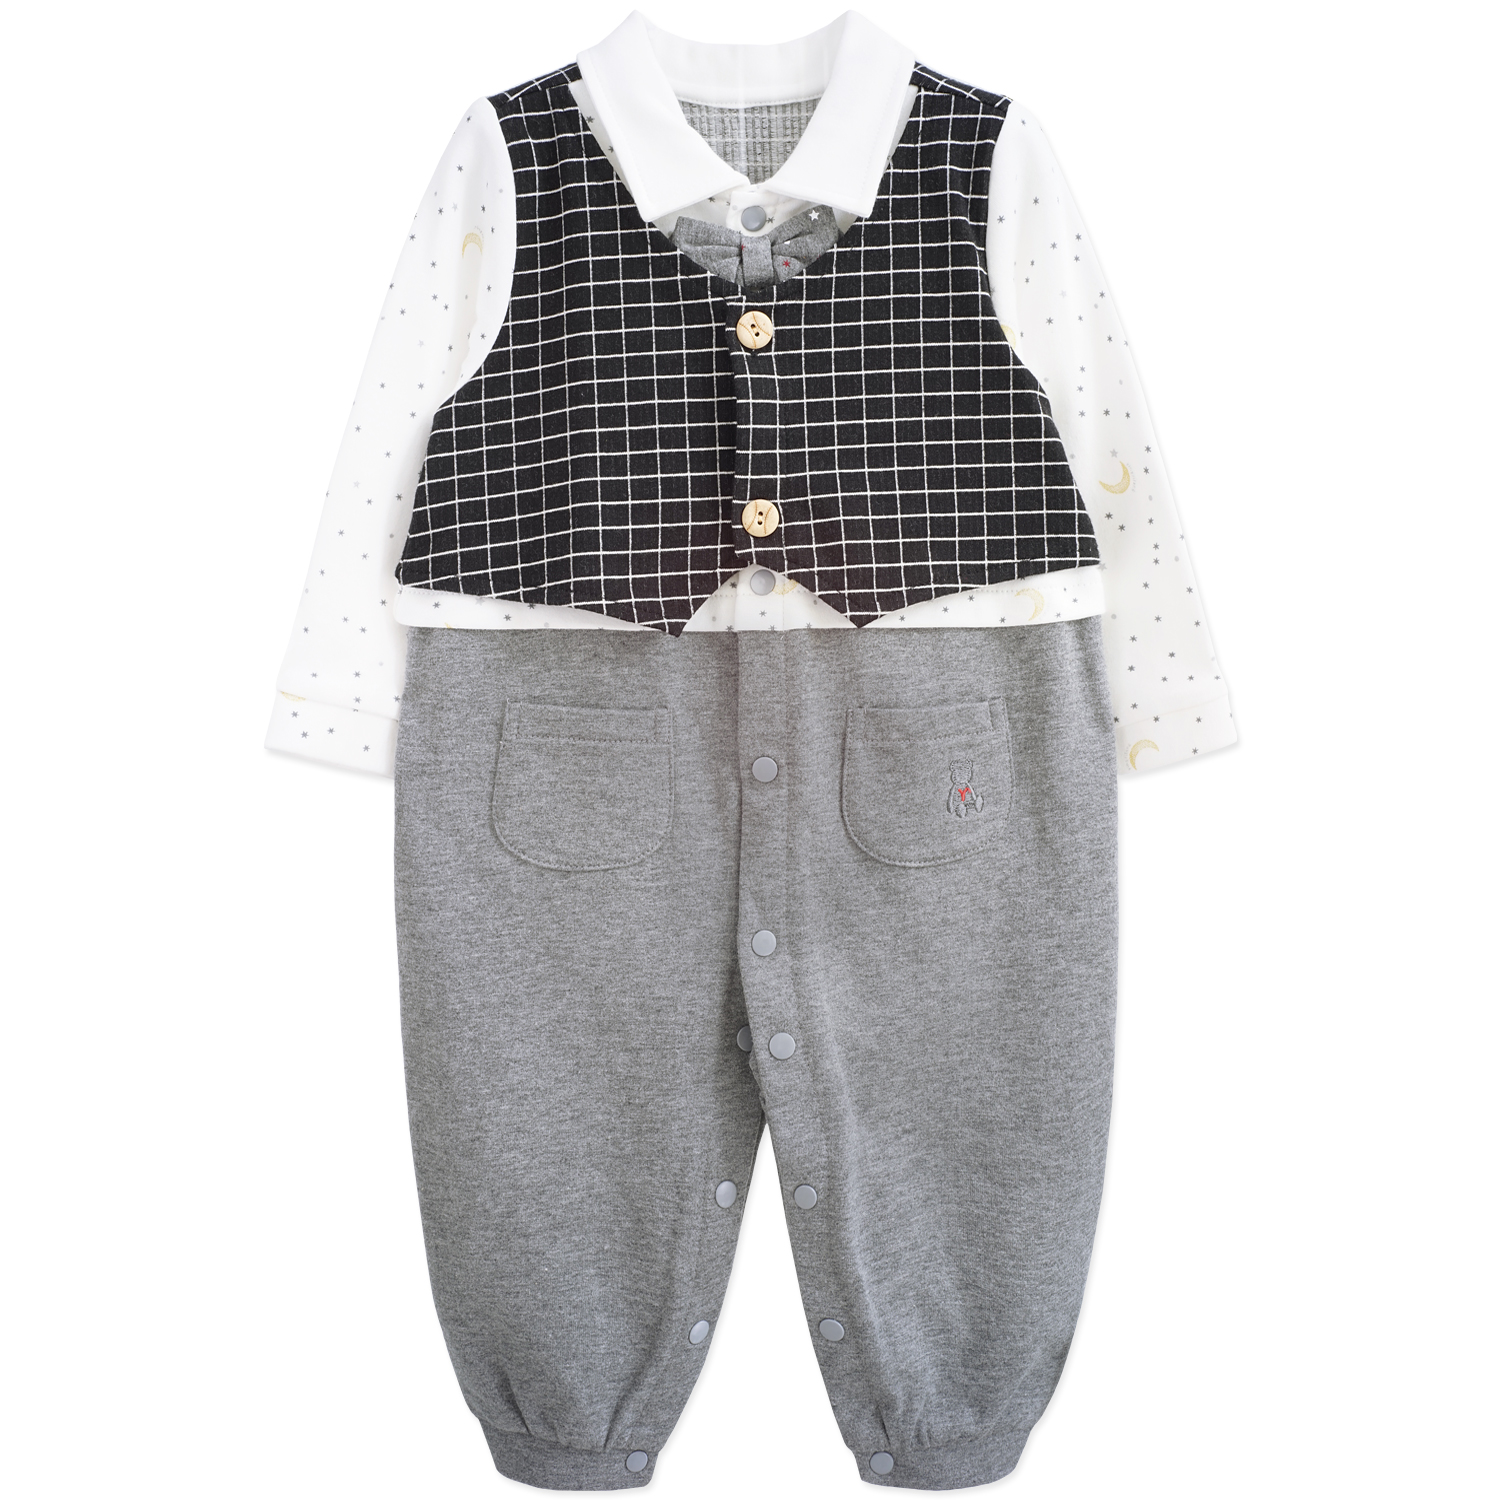 4a961c759 2018 Infant Rushed Full Limited Baby Rompers Boys Toddler Cute ...